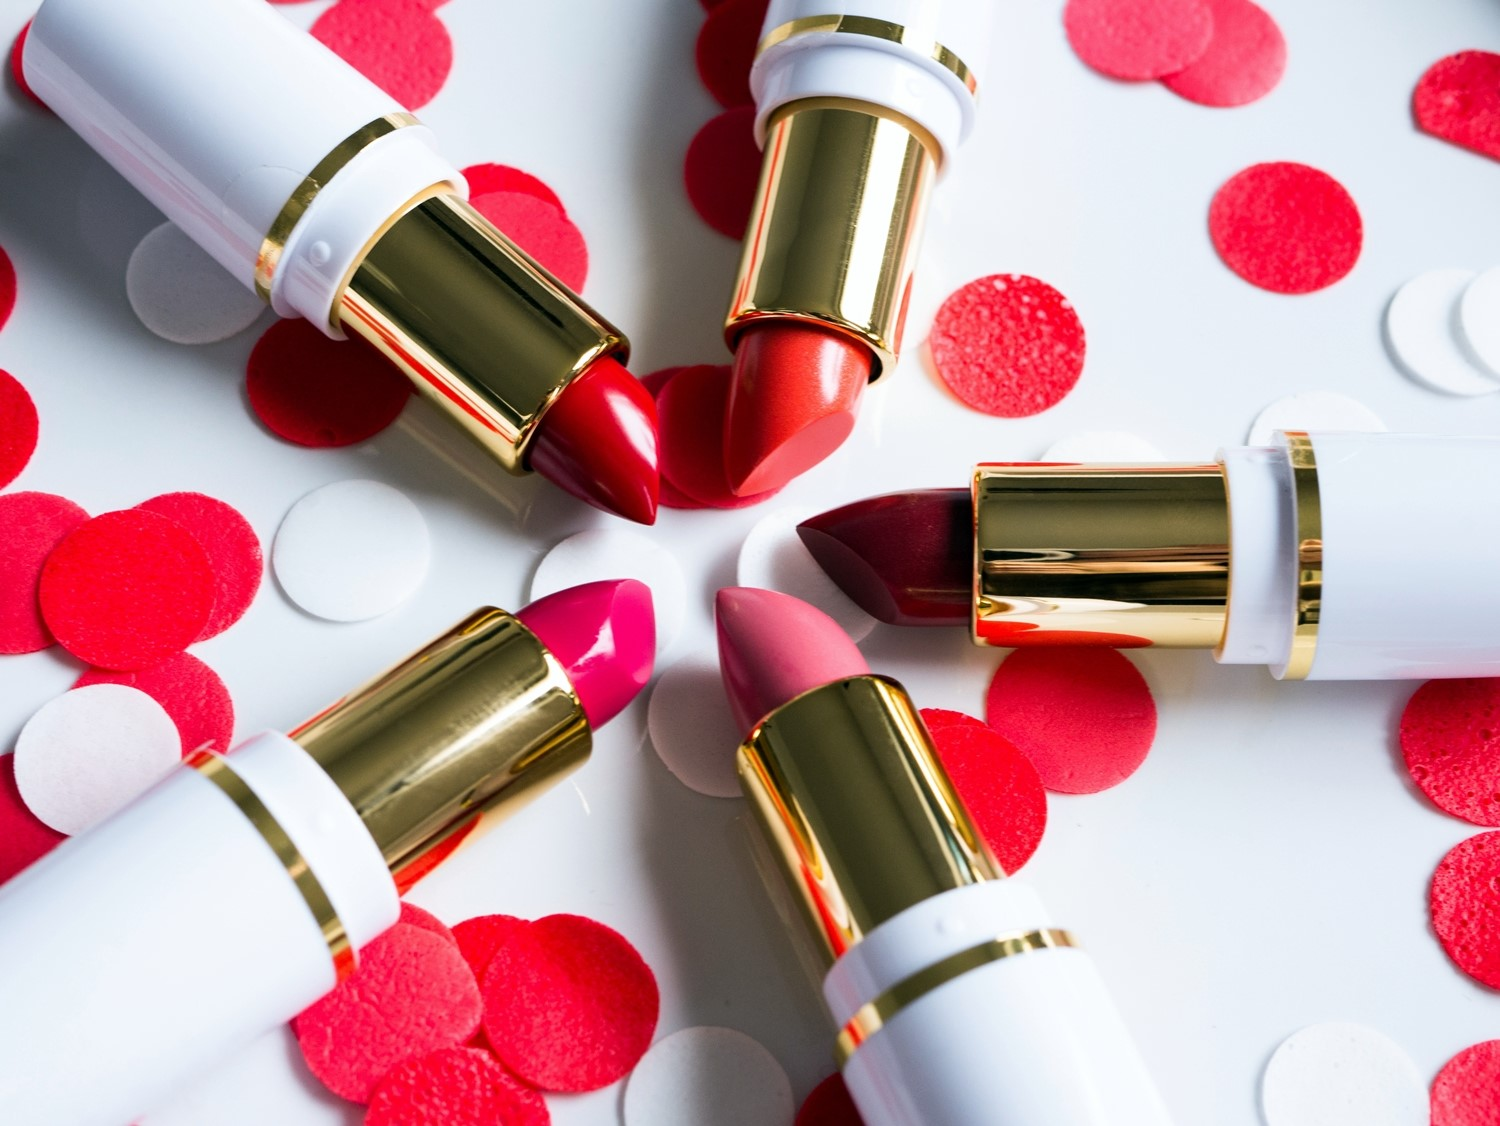 AA Wings of Colors Color Creme Lipstick 40 Cream Pink, 47 Orange Red, 48 Red Wine